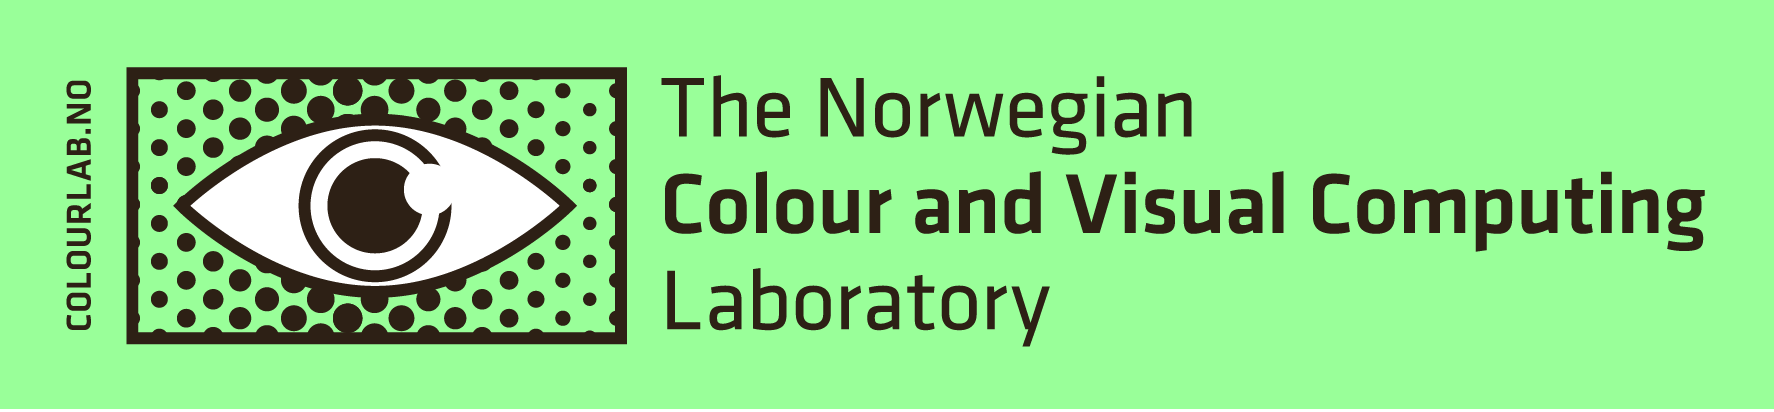 Colour lab logo